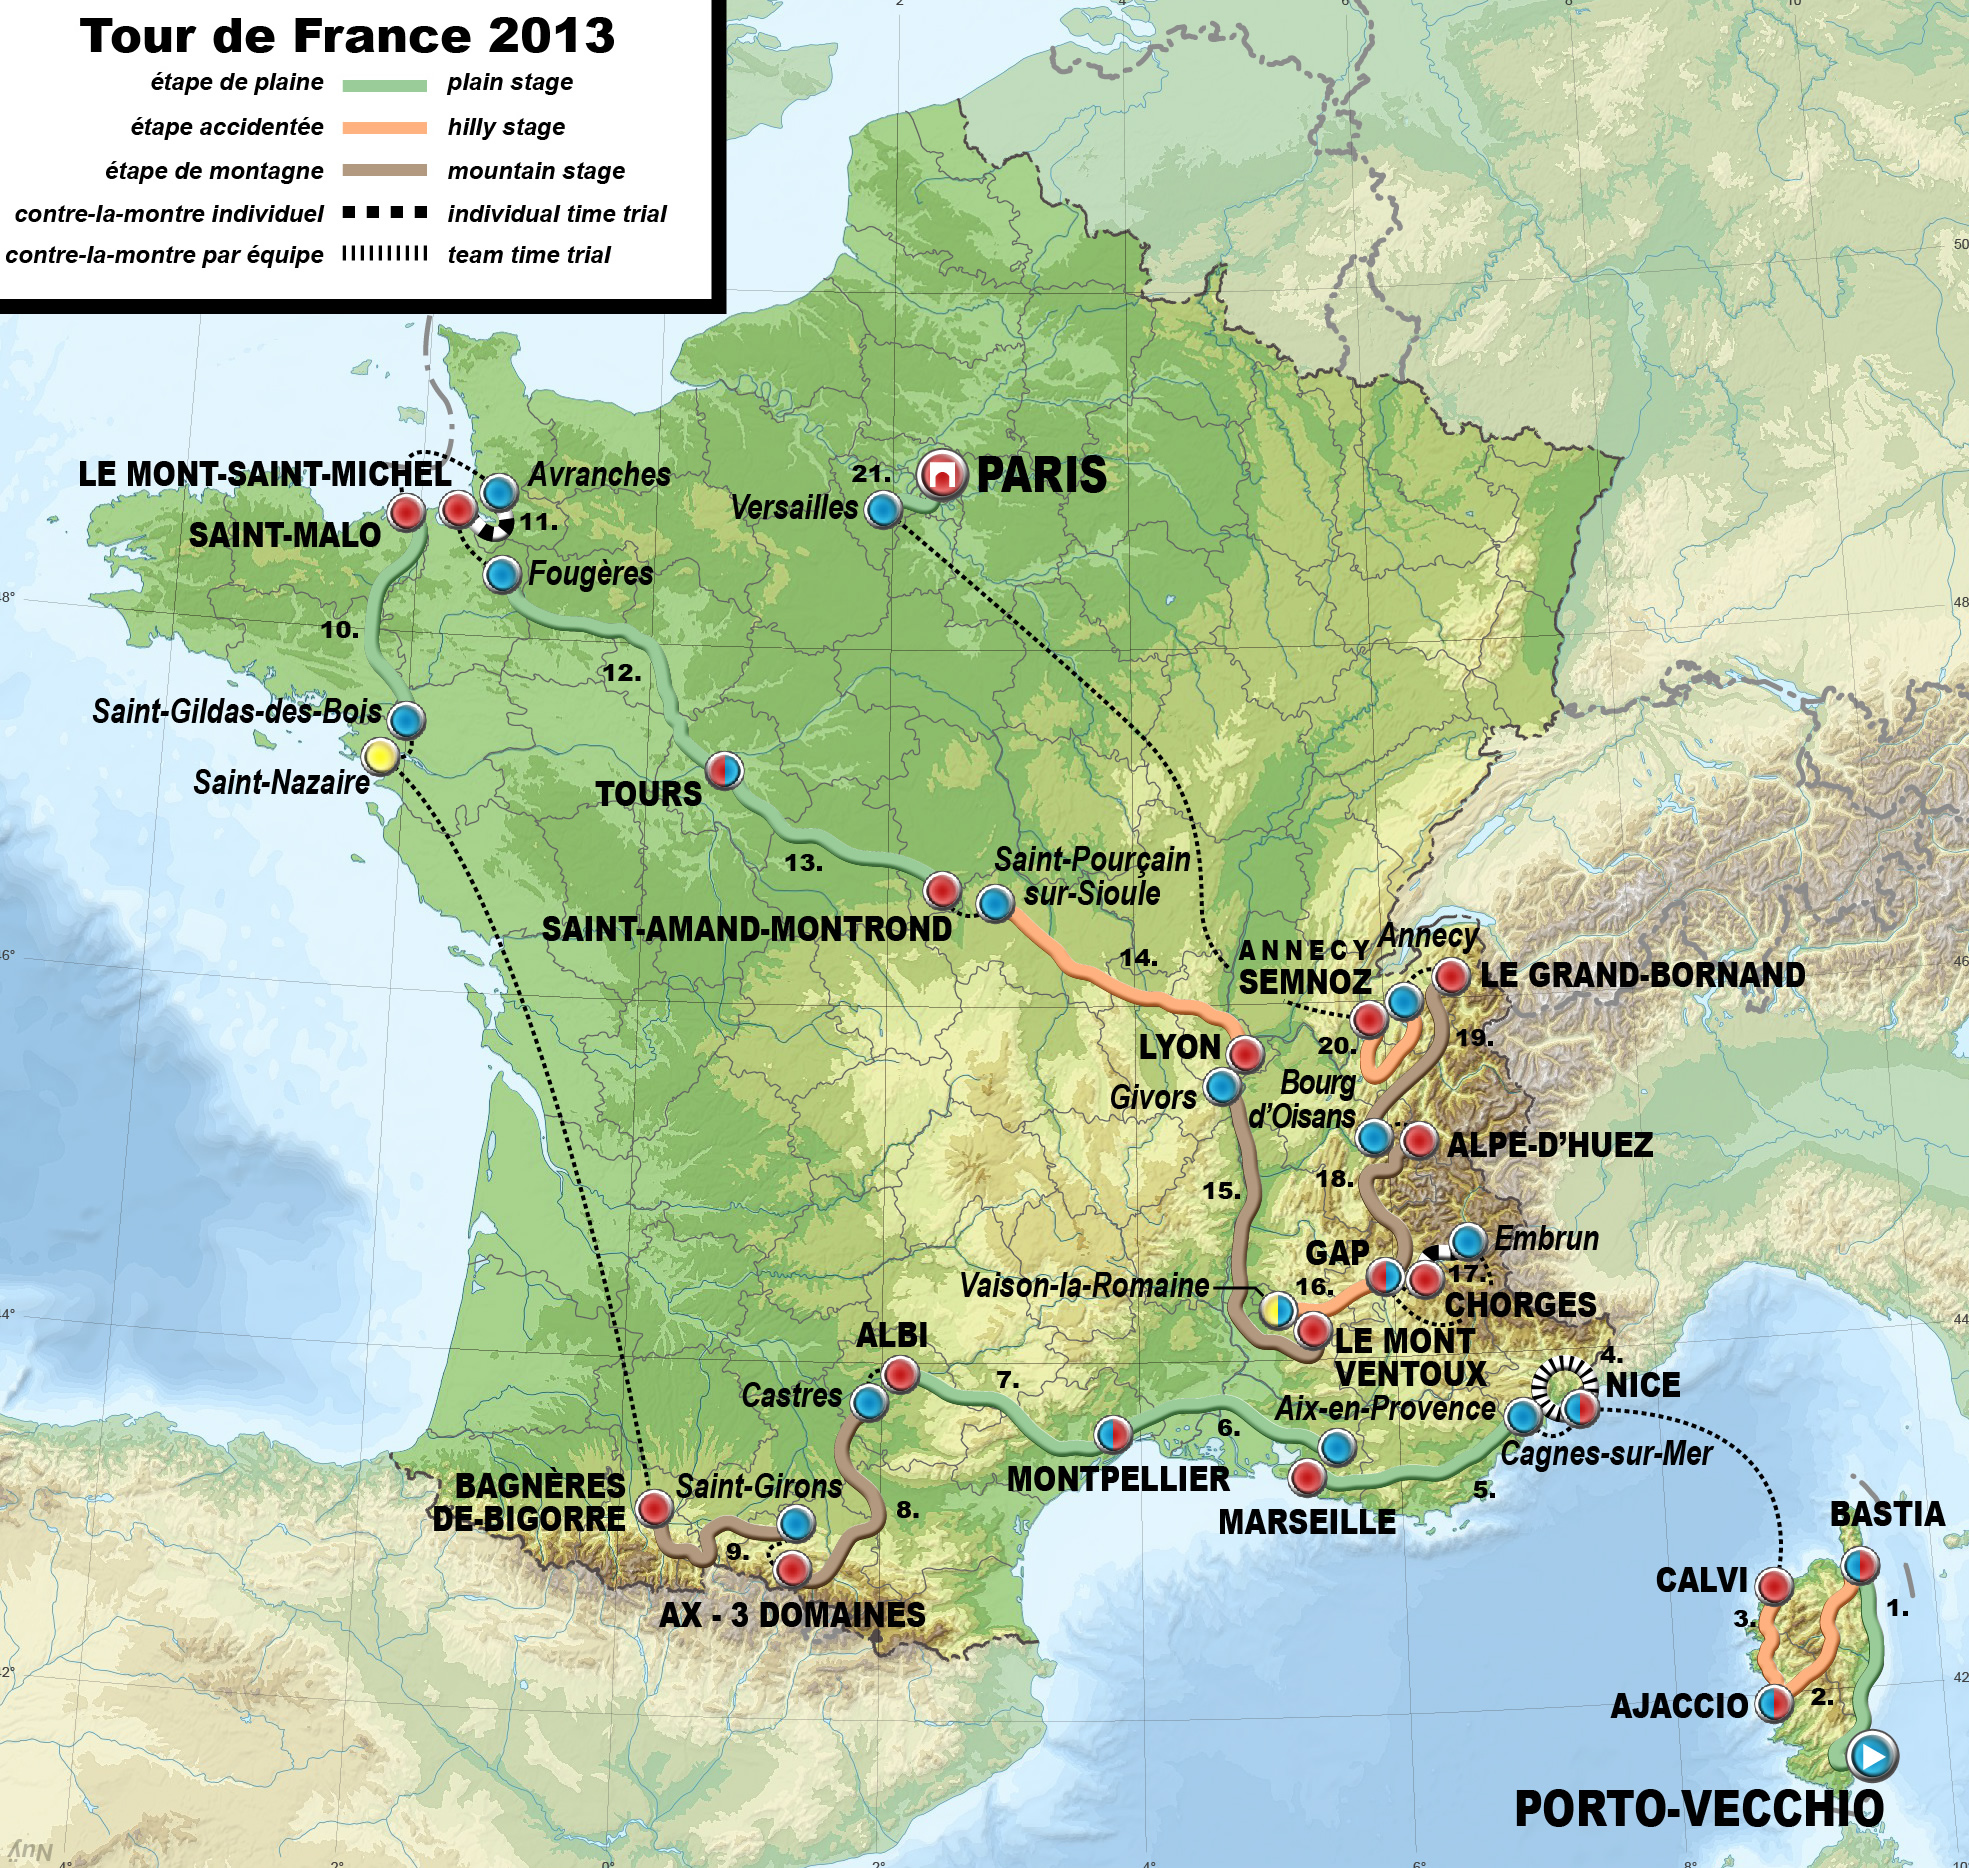 Description 2013 tour de france map